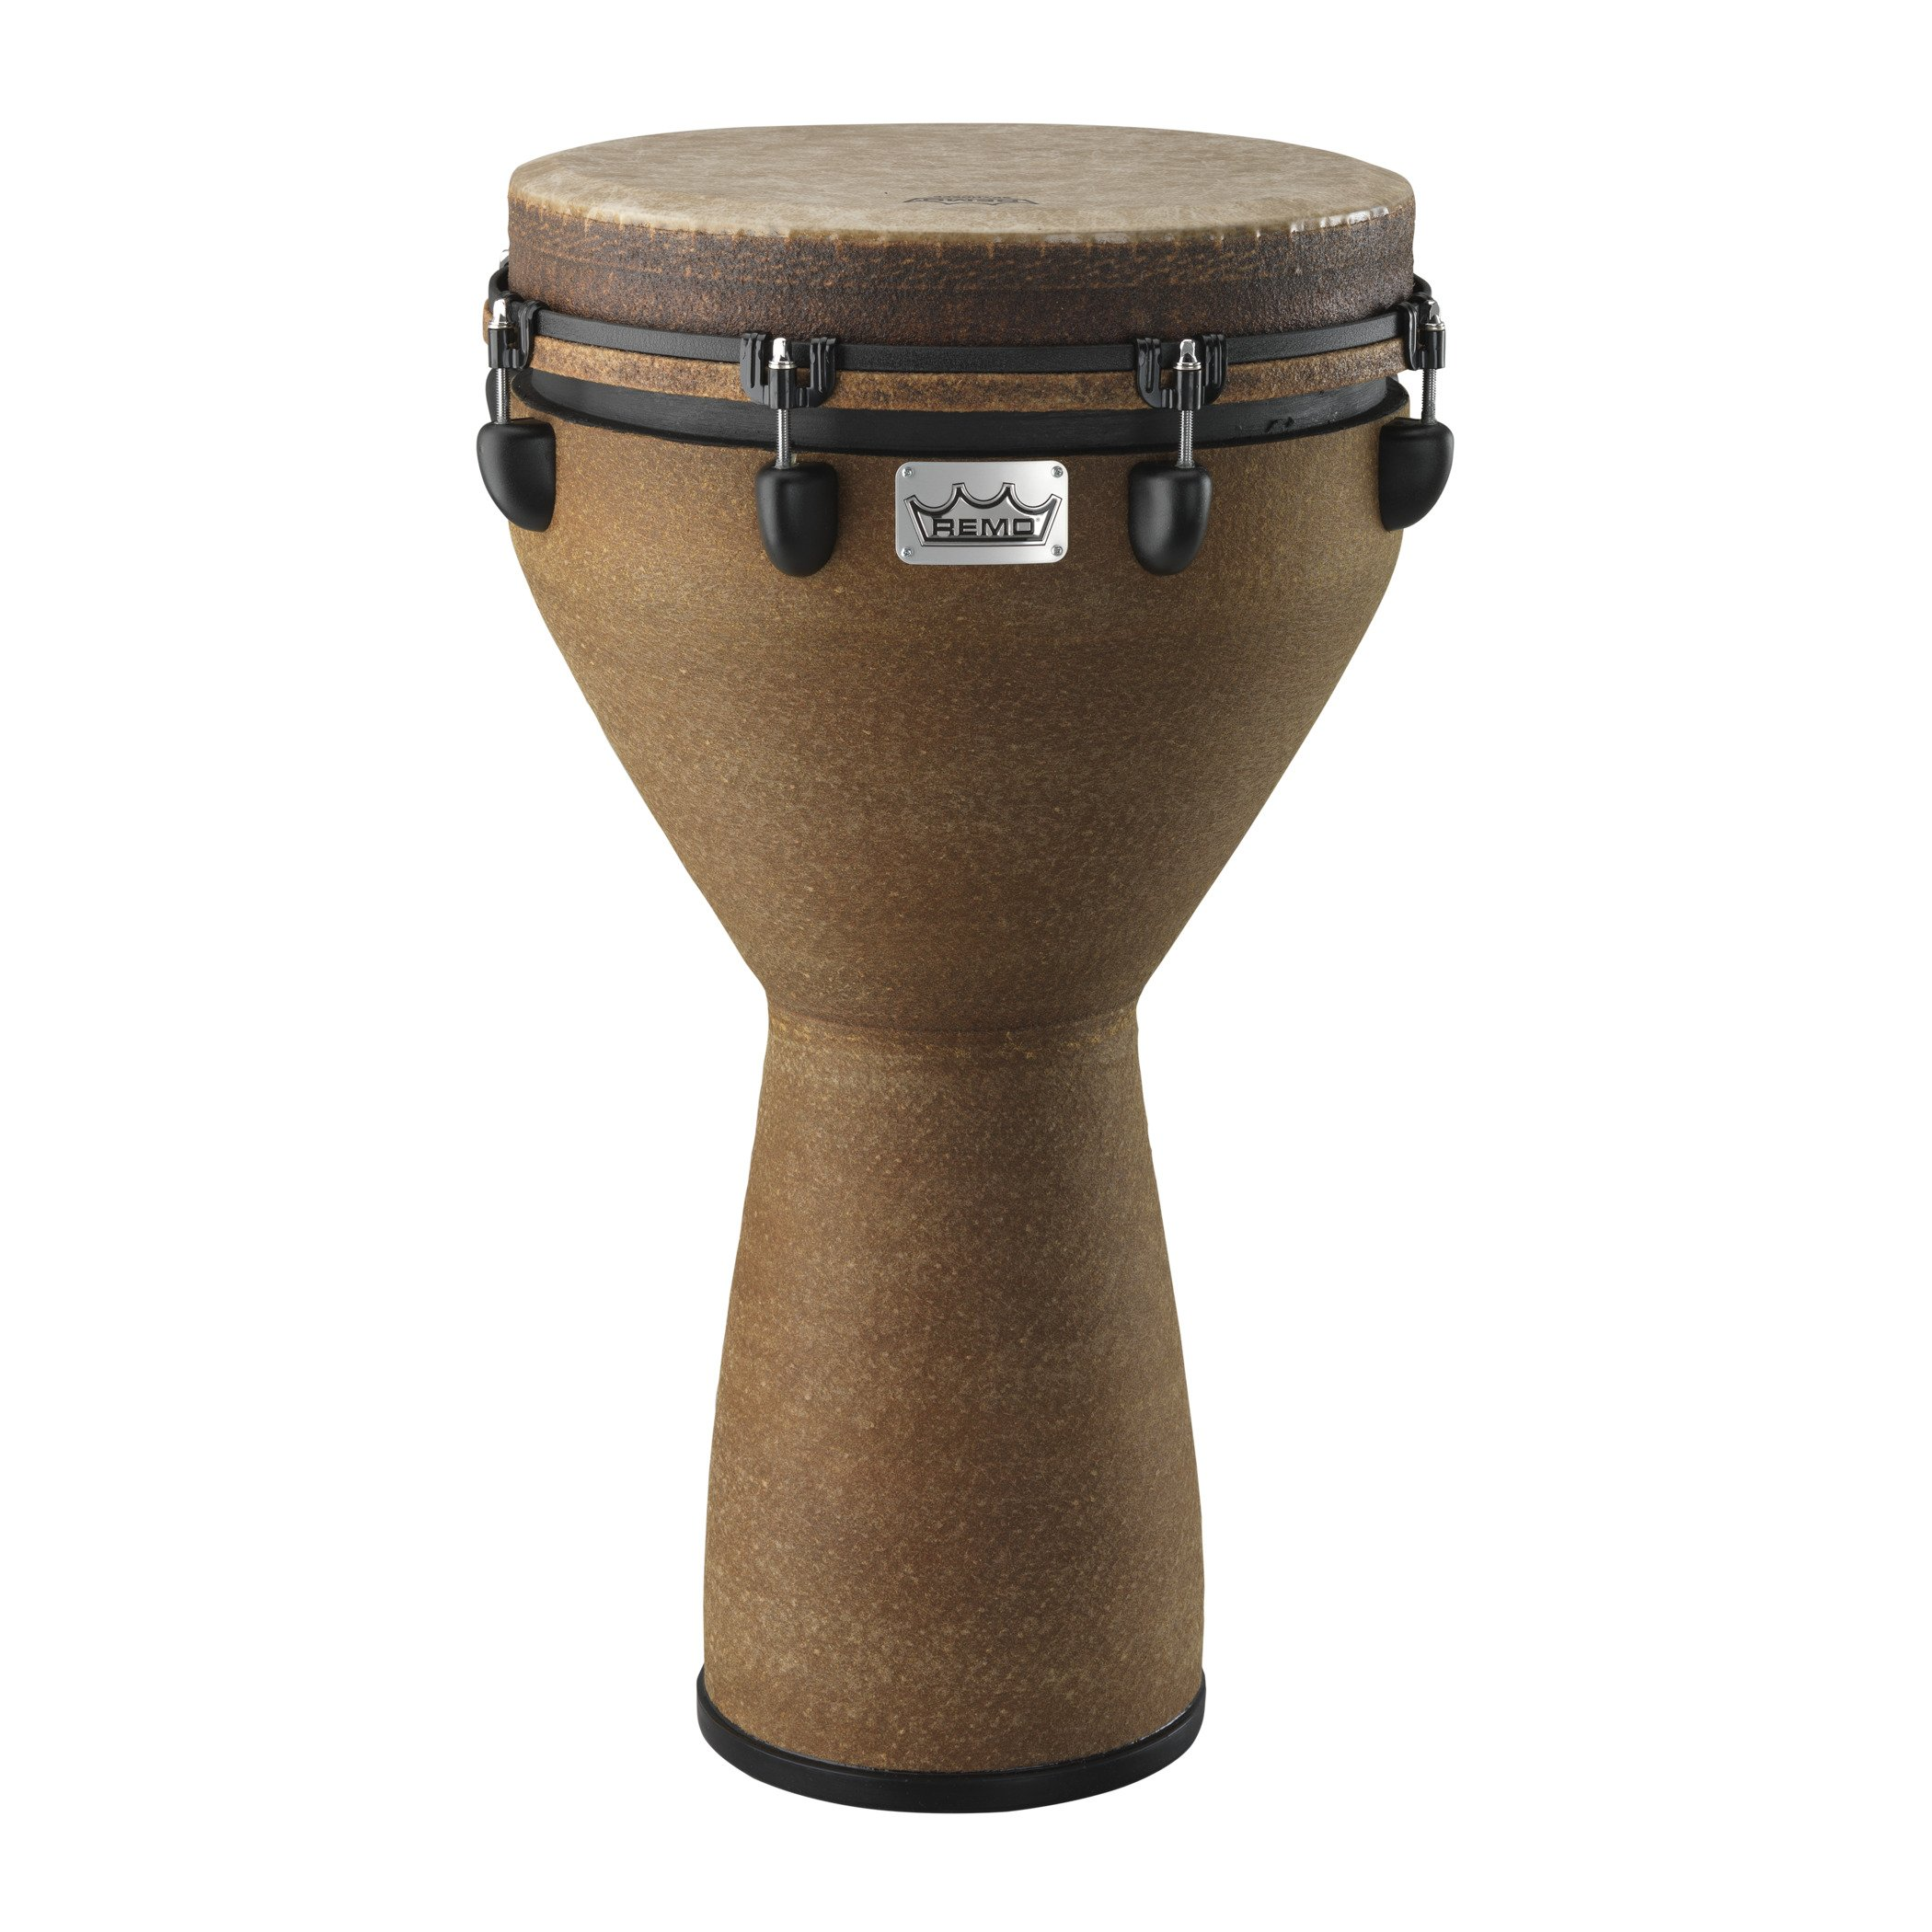 Remo DJ-0014-05 Mondo Djembe Drum - Earth, 14''